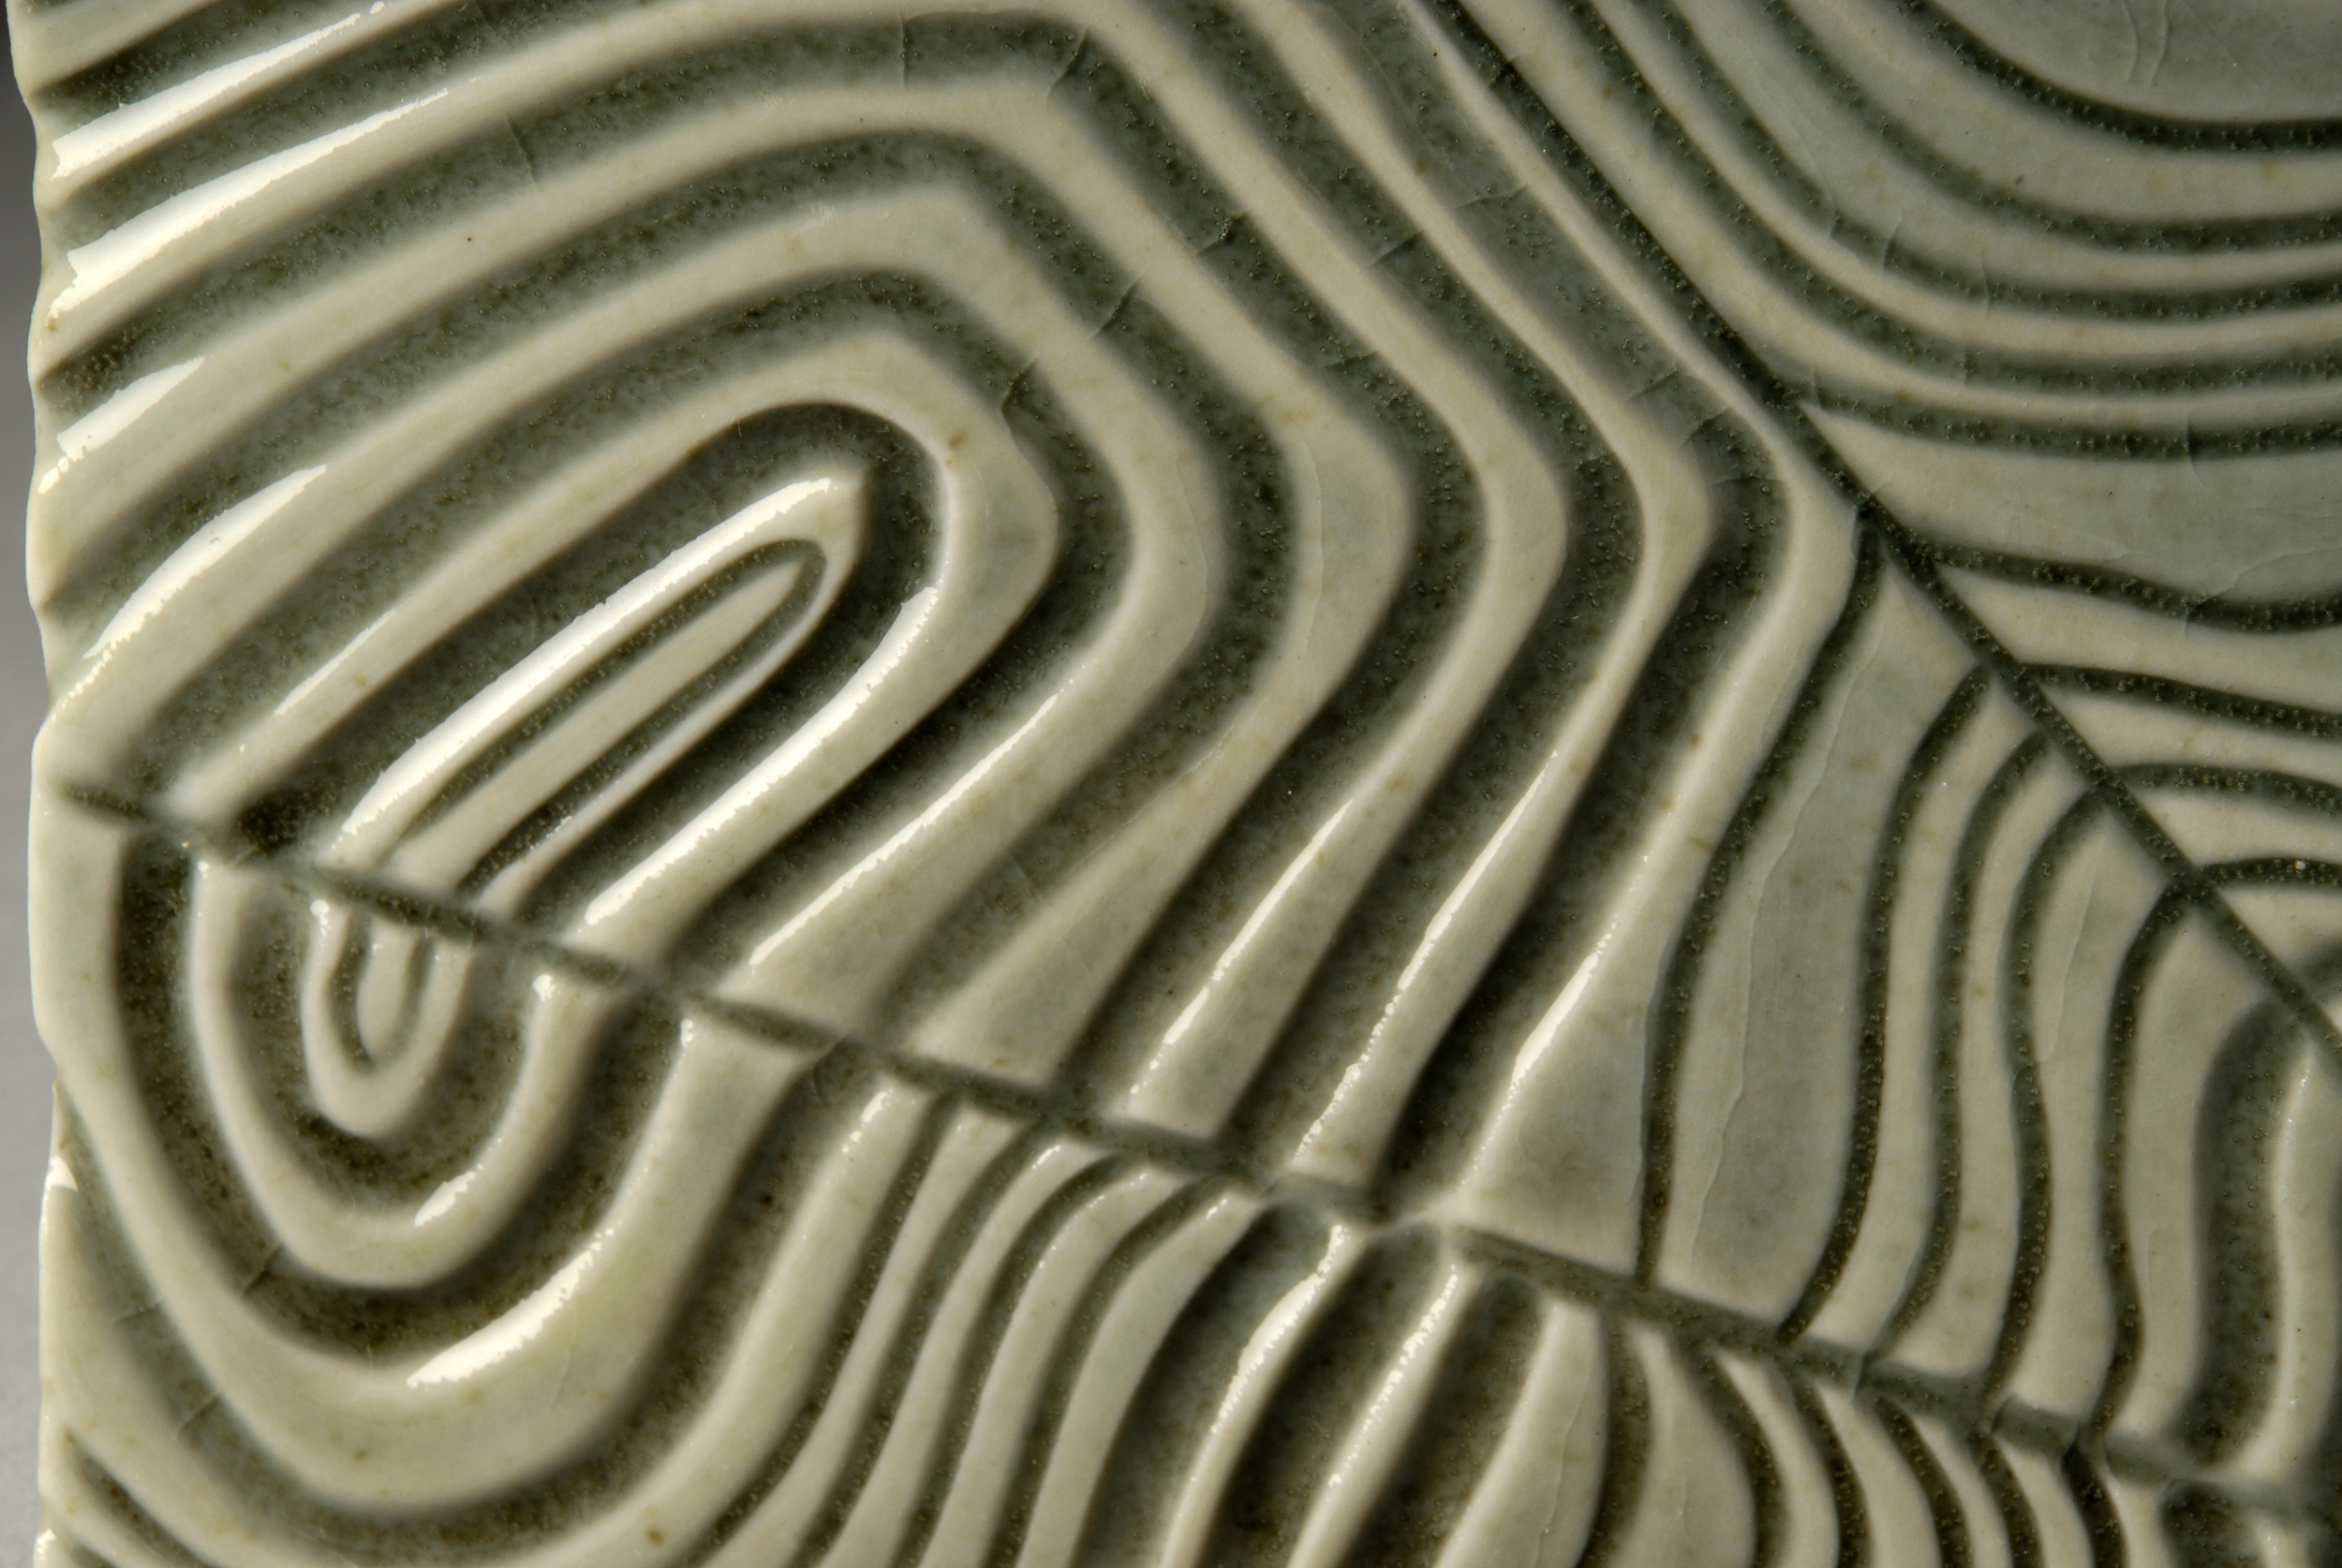 Carved Porcelain Tile (Detail)